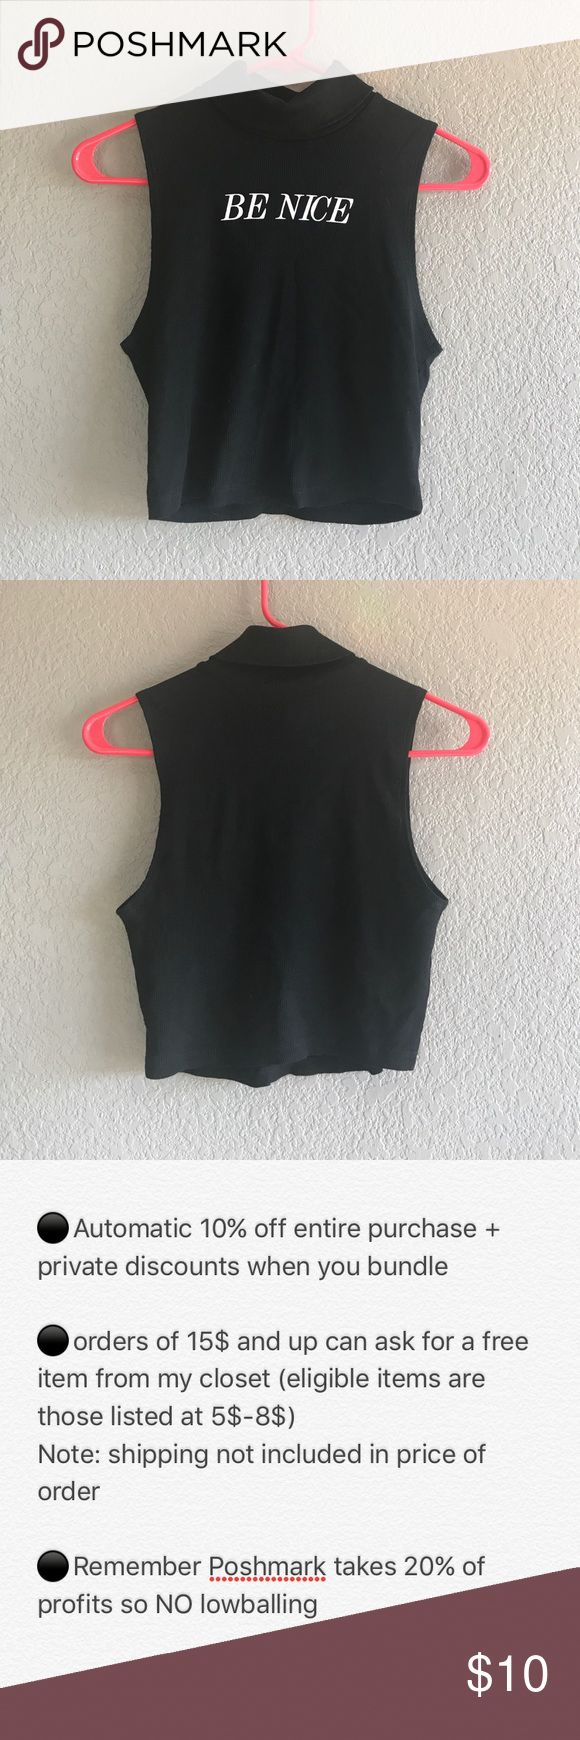 """Be Nice"" turtle neck tank top - NWOT NWOT / NEVER worn black turtle neck tank top that says ""be nice"" - size M - NO flaws / in perfect condition - gives off that instagram baddie vibe - cropped - smoke and pet free home - priced at lowest I can offer for individual sale - bundle with at least 1 other item for automatic 10% off + great private offers ! Forever 21 Tops Crop Tops"